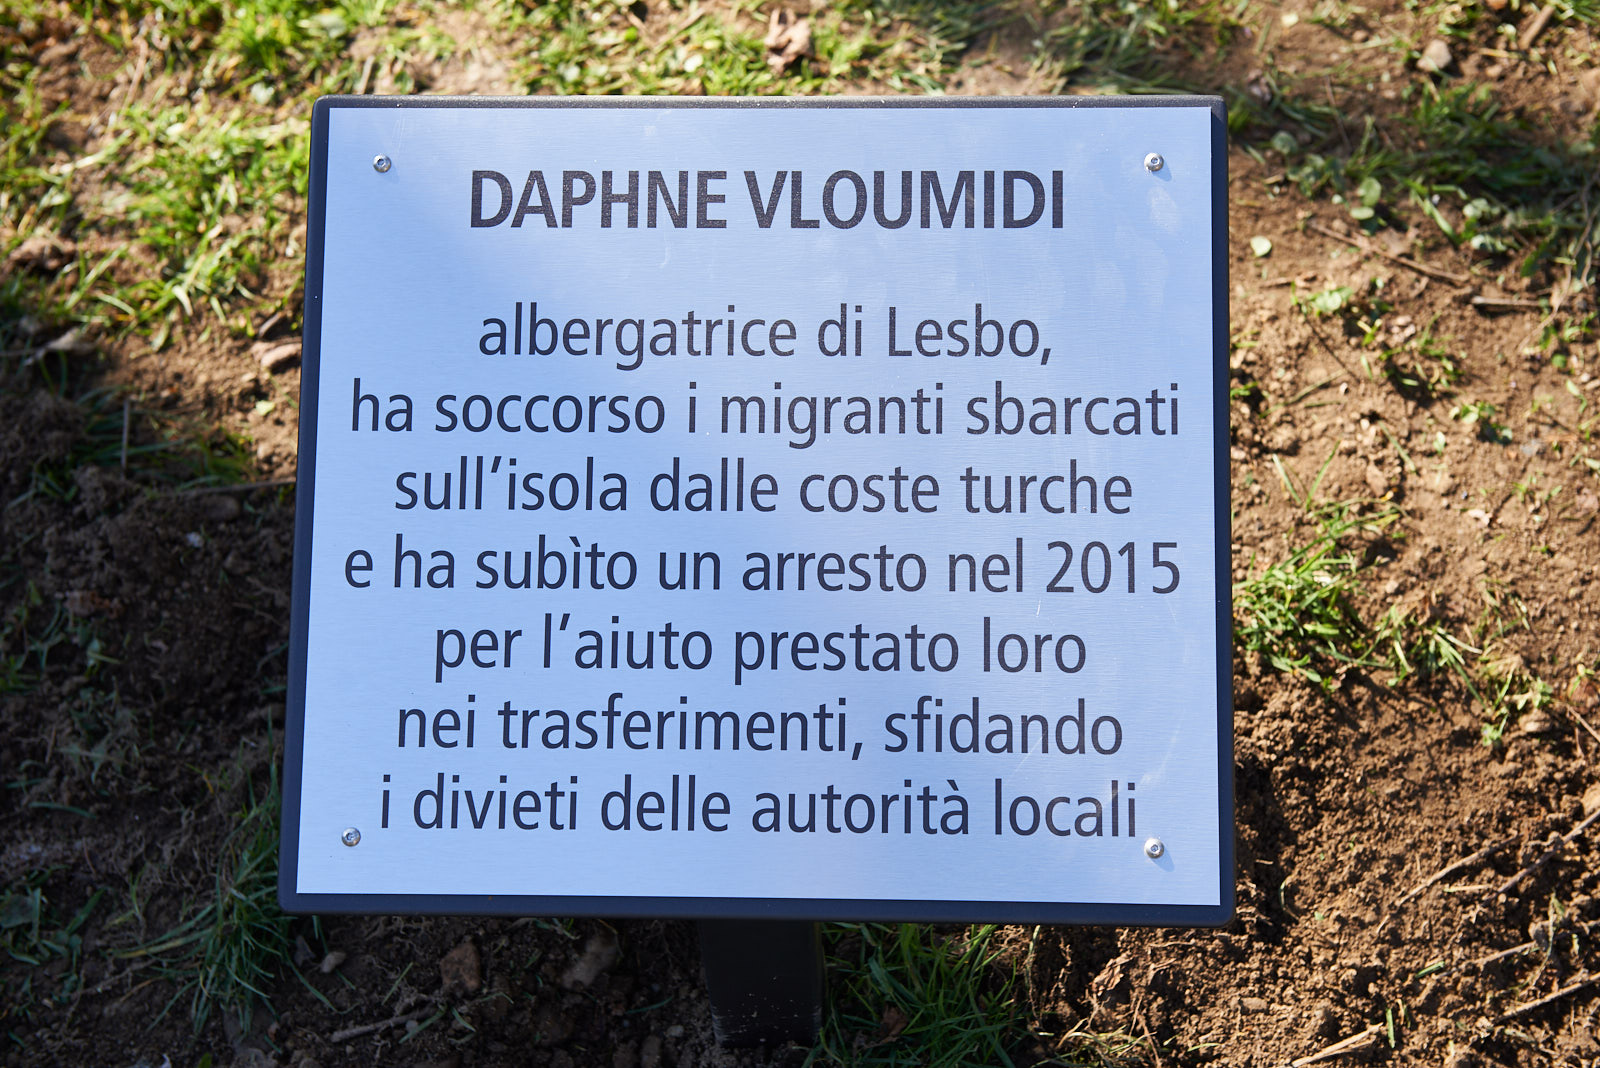 Plaque for Daphne Vloumidi